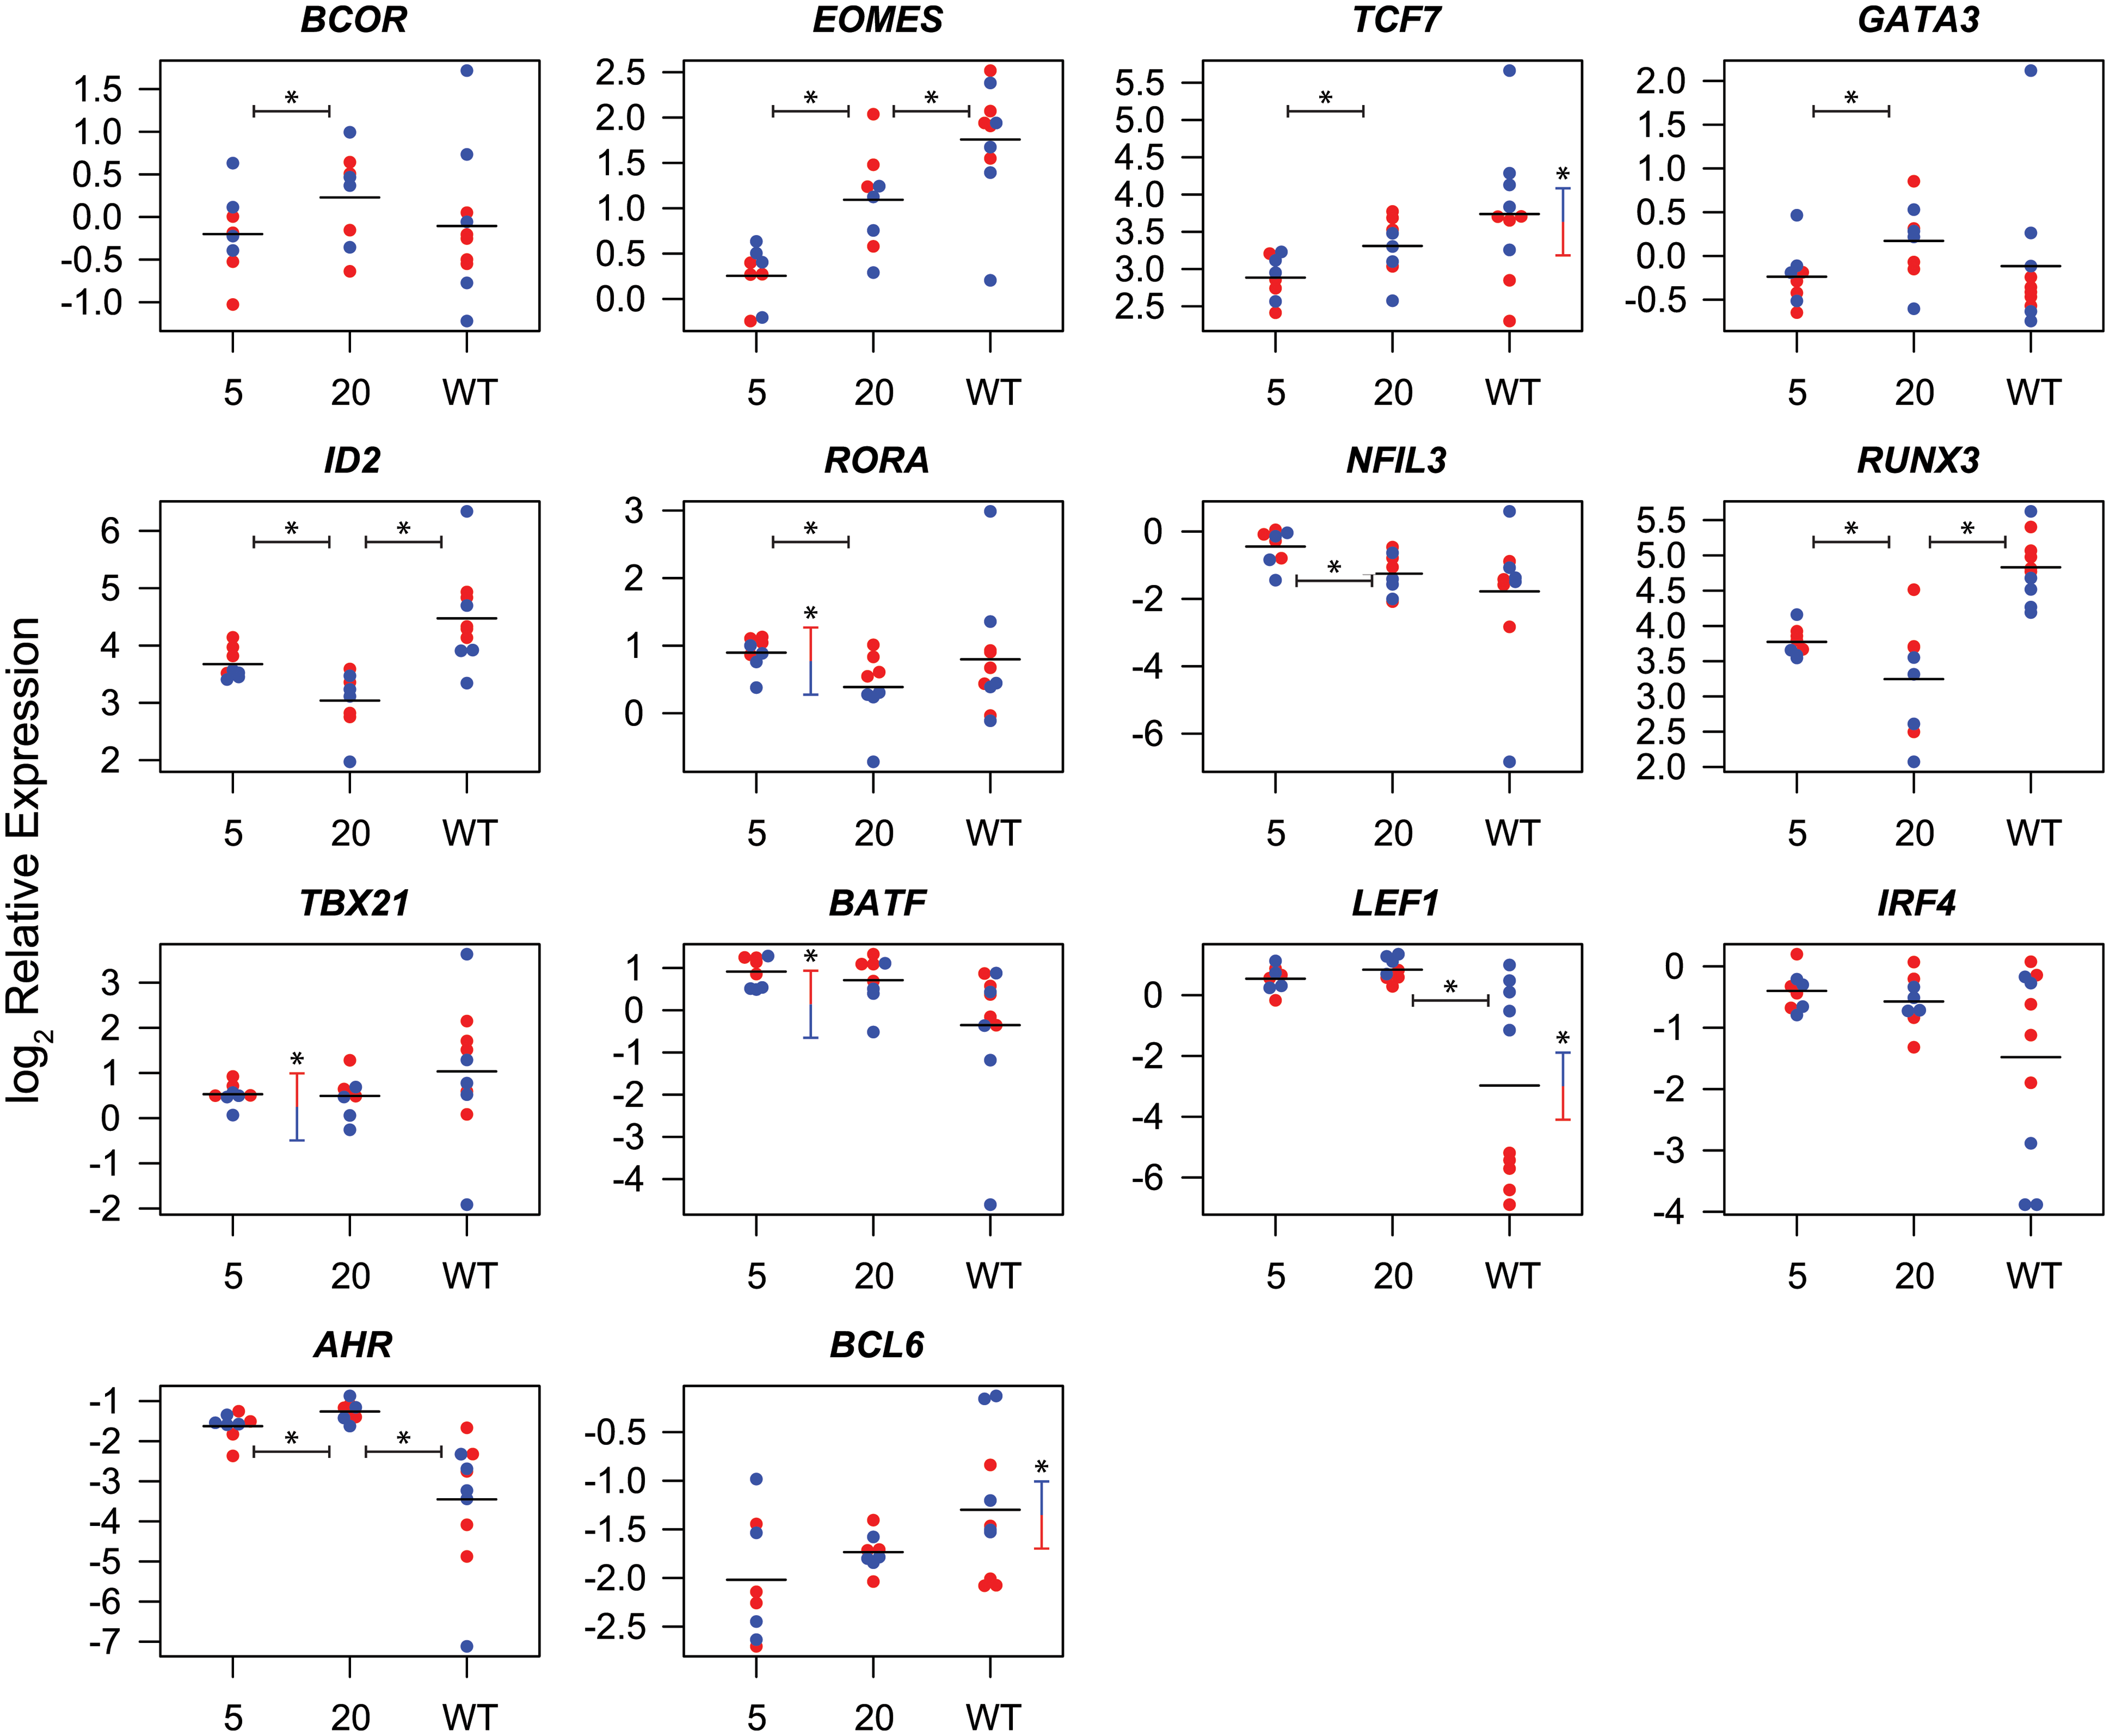 Differential expression of transcription factors in CD8<sup>+</sup> T cells isolated at week 5 and week 20 post-vaccination with SIVΔnef and at week 20 post-infection with wild-type SIV.